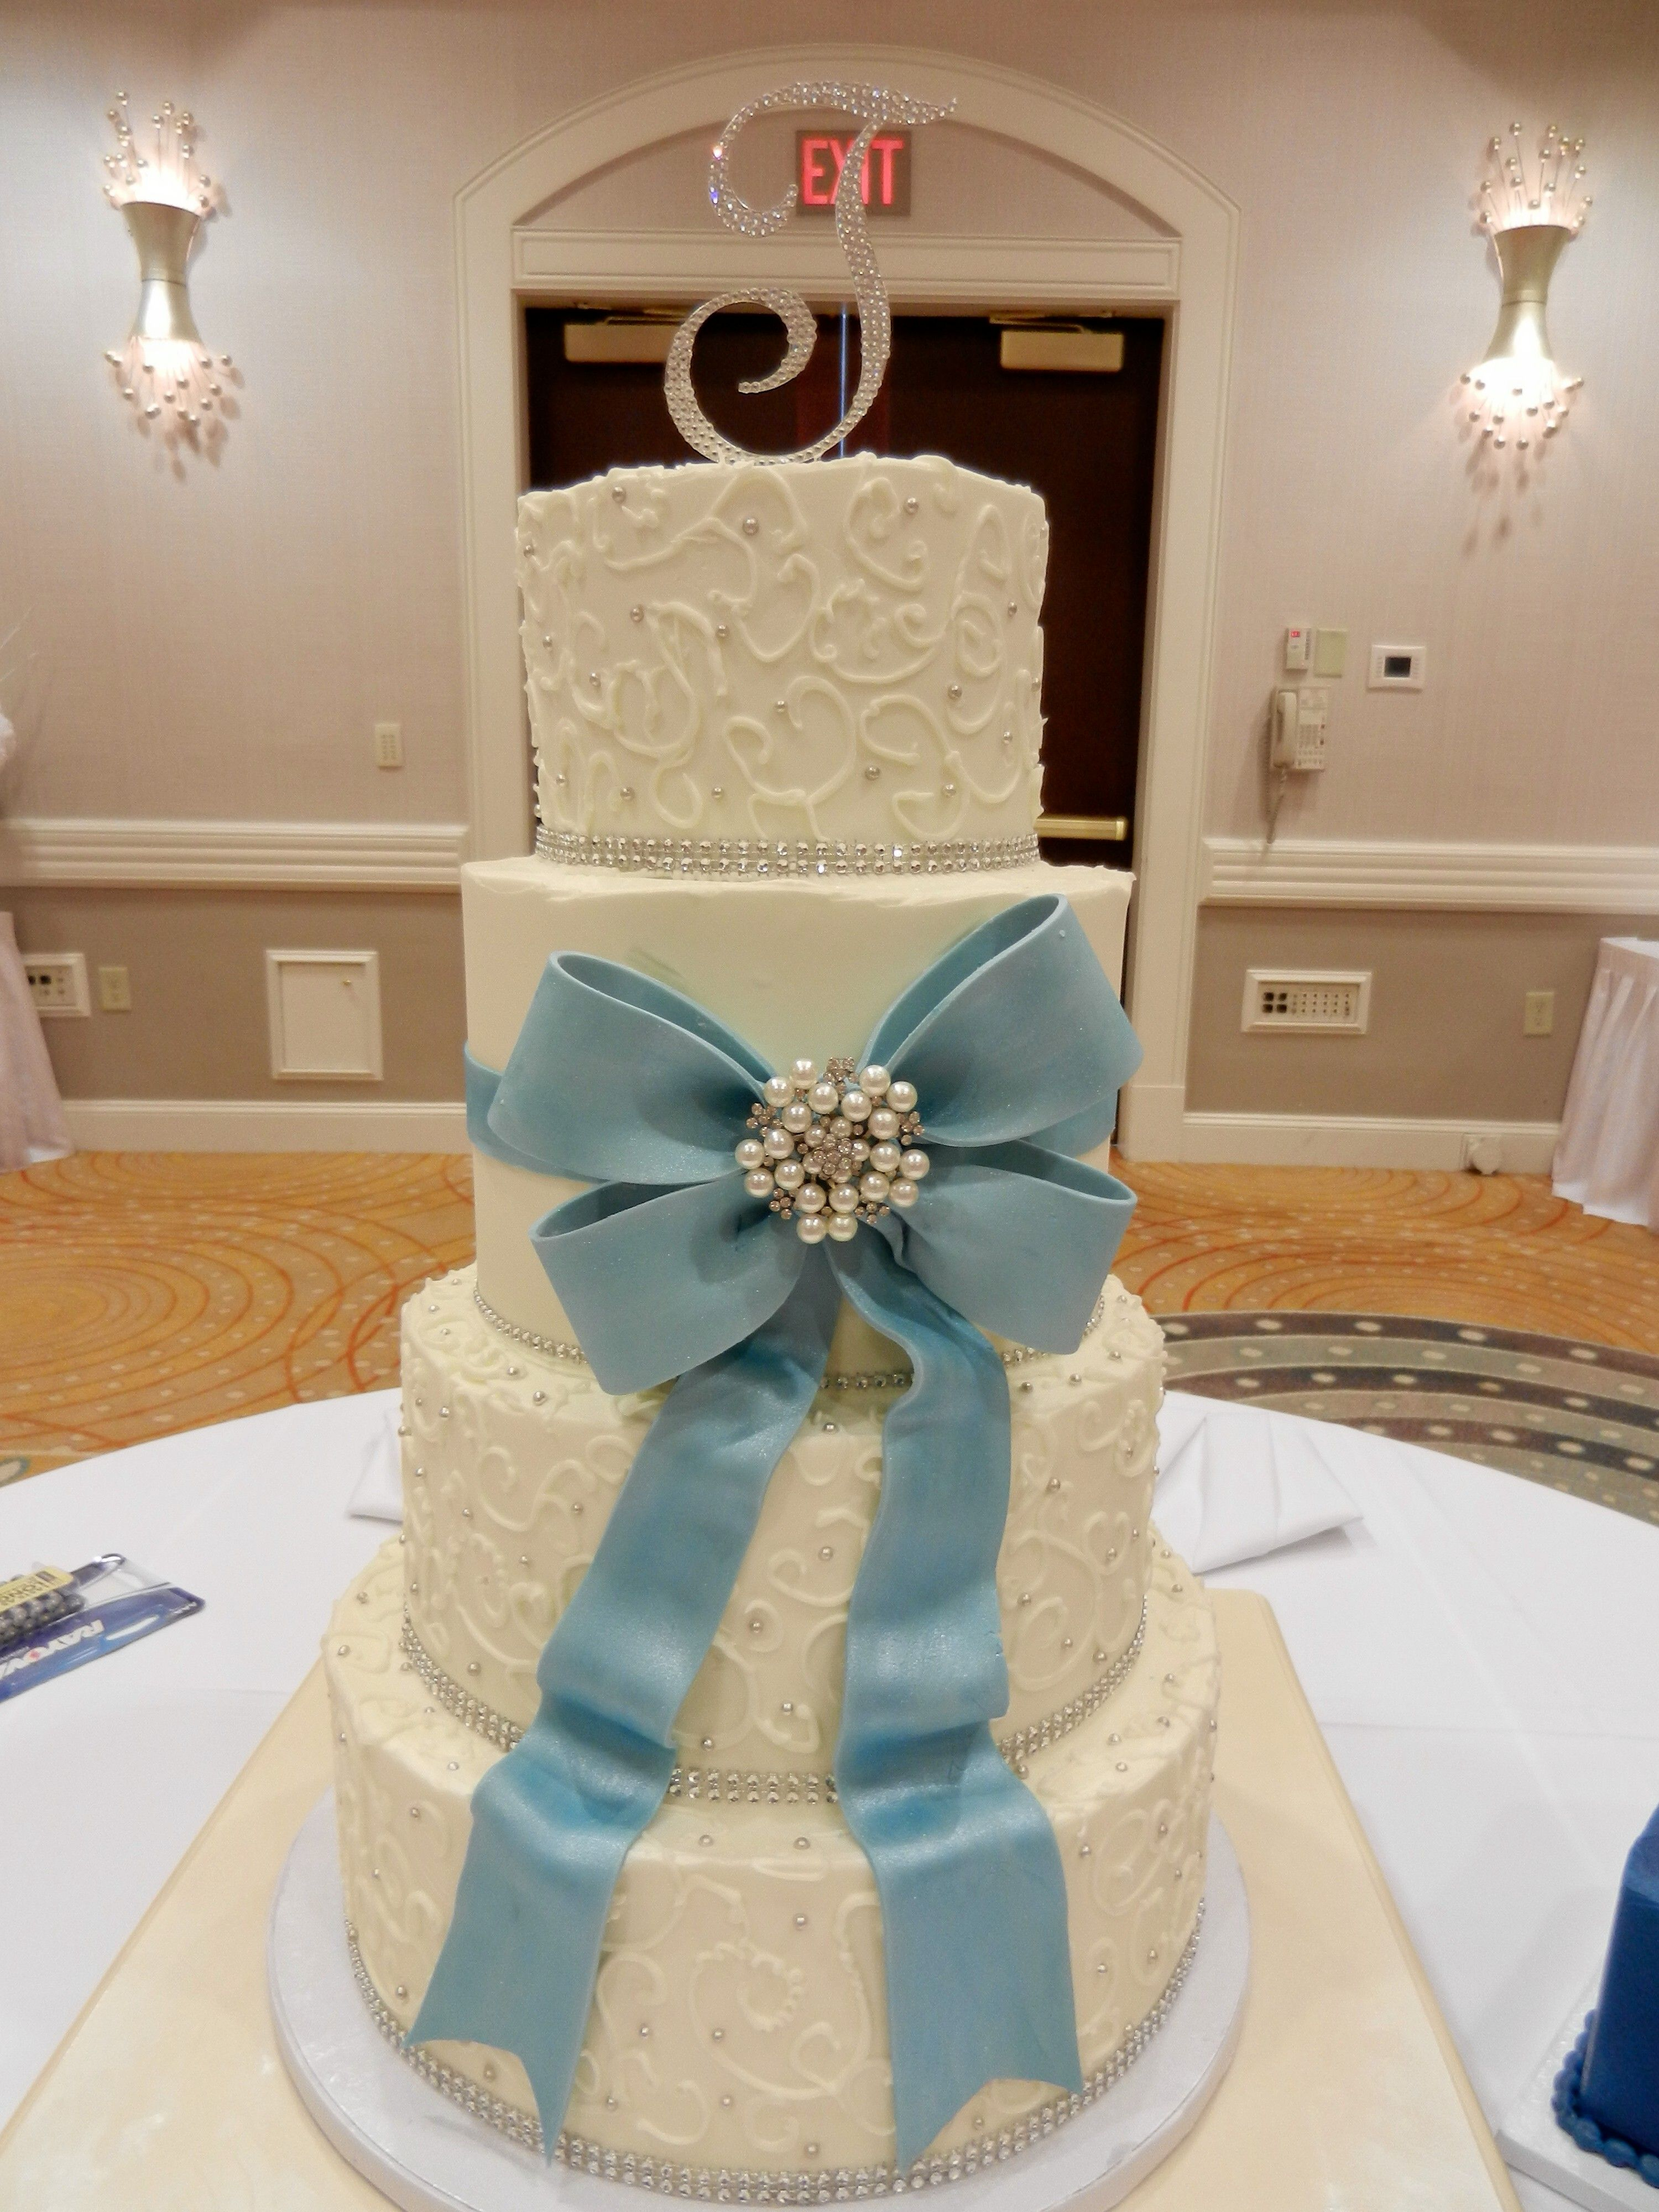 wedding cake with bow and broach wwwcheesecakeetcbiz wedding cakes charlotte nc